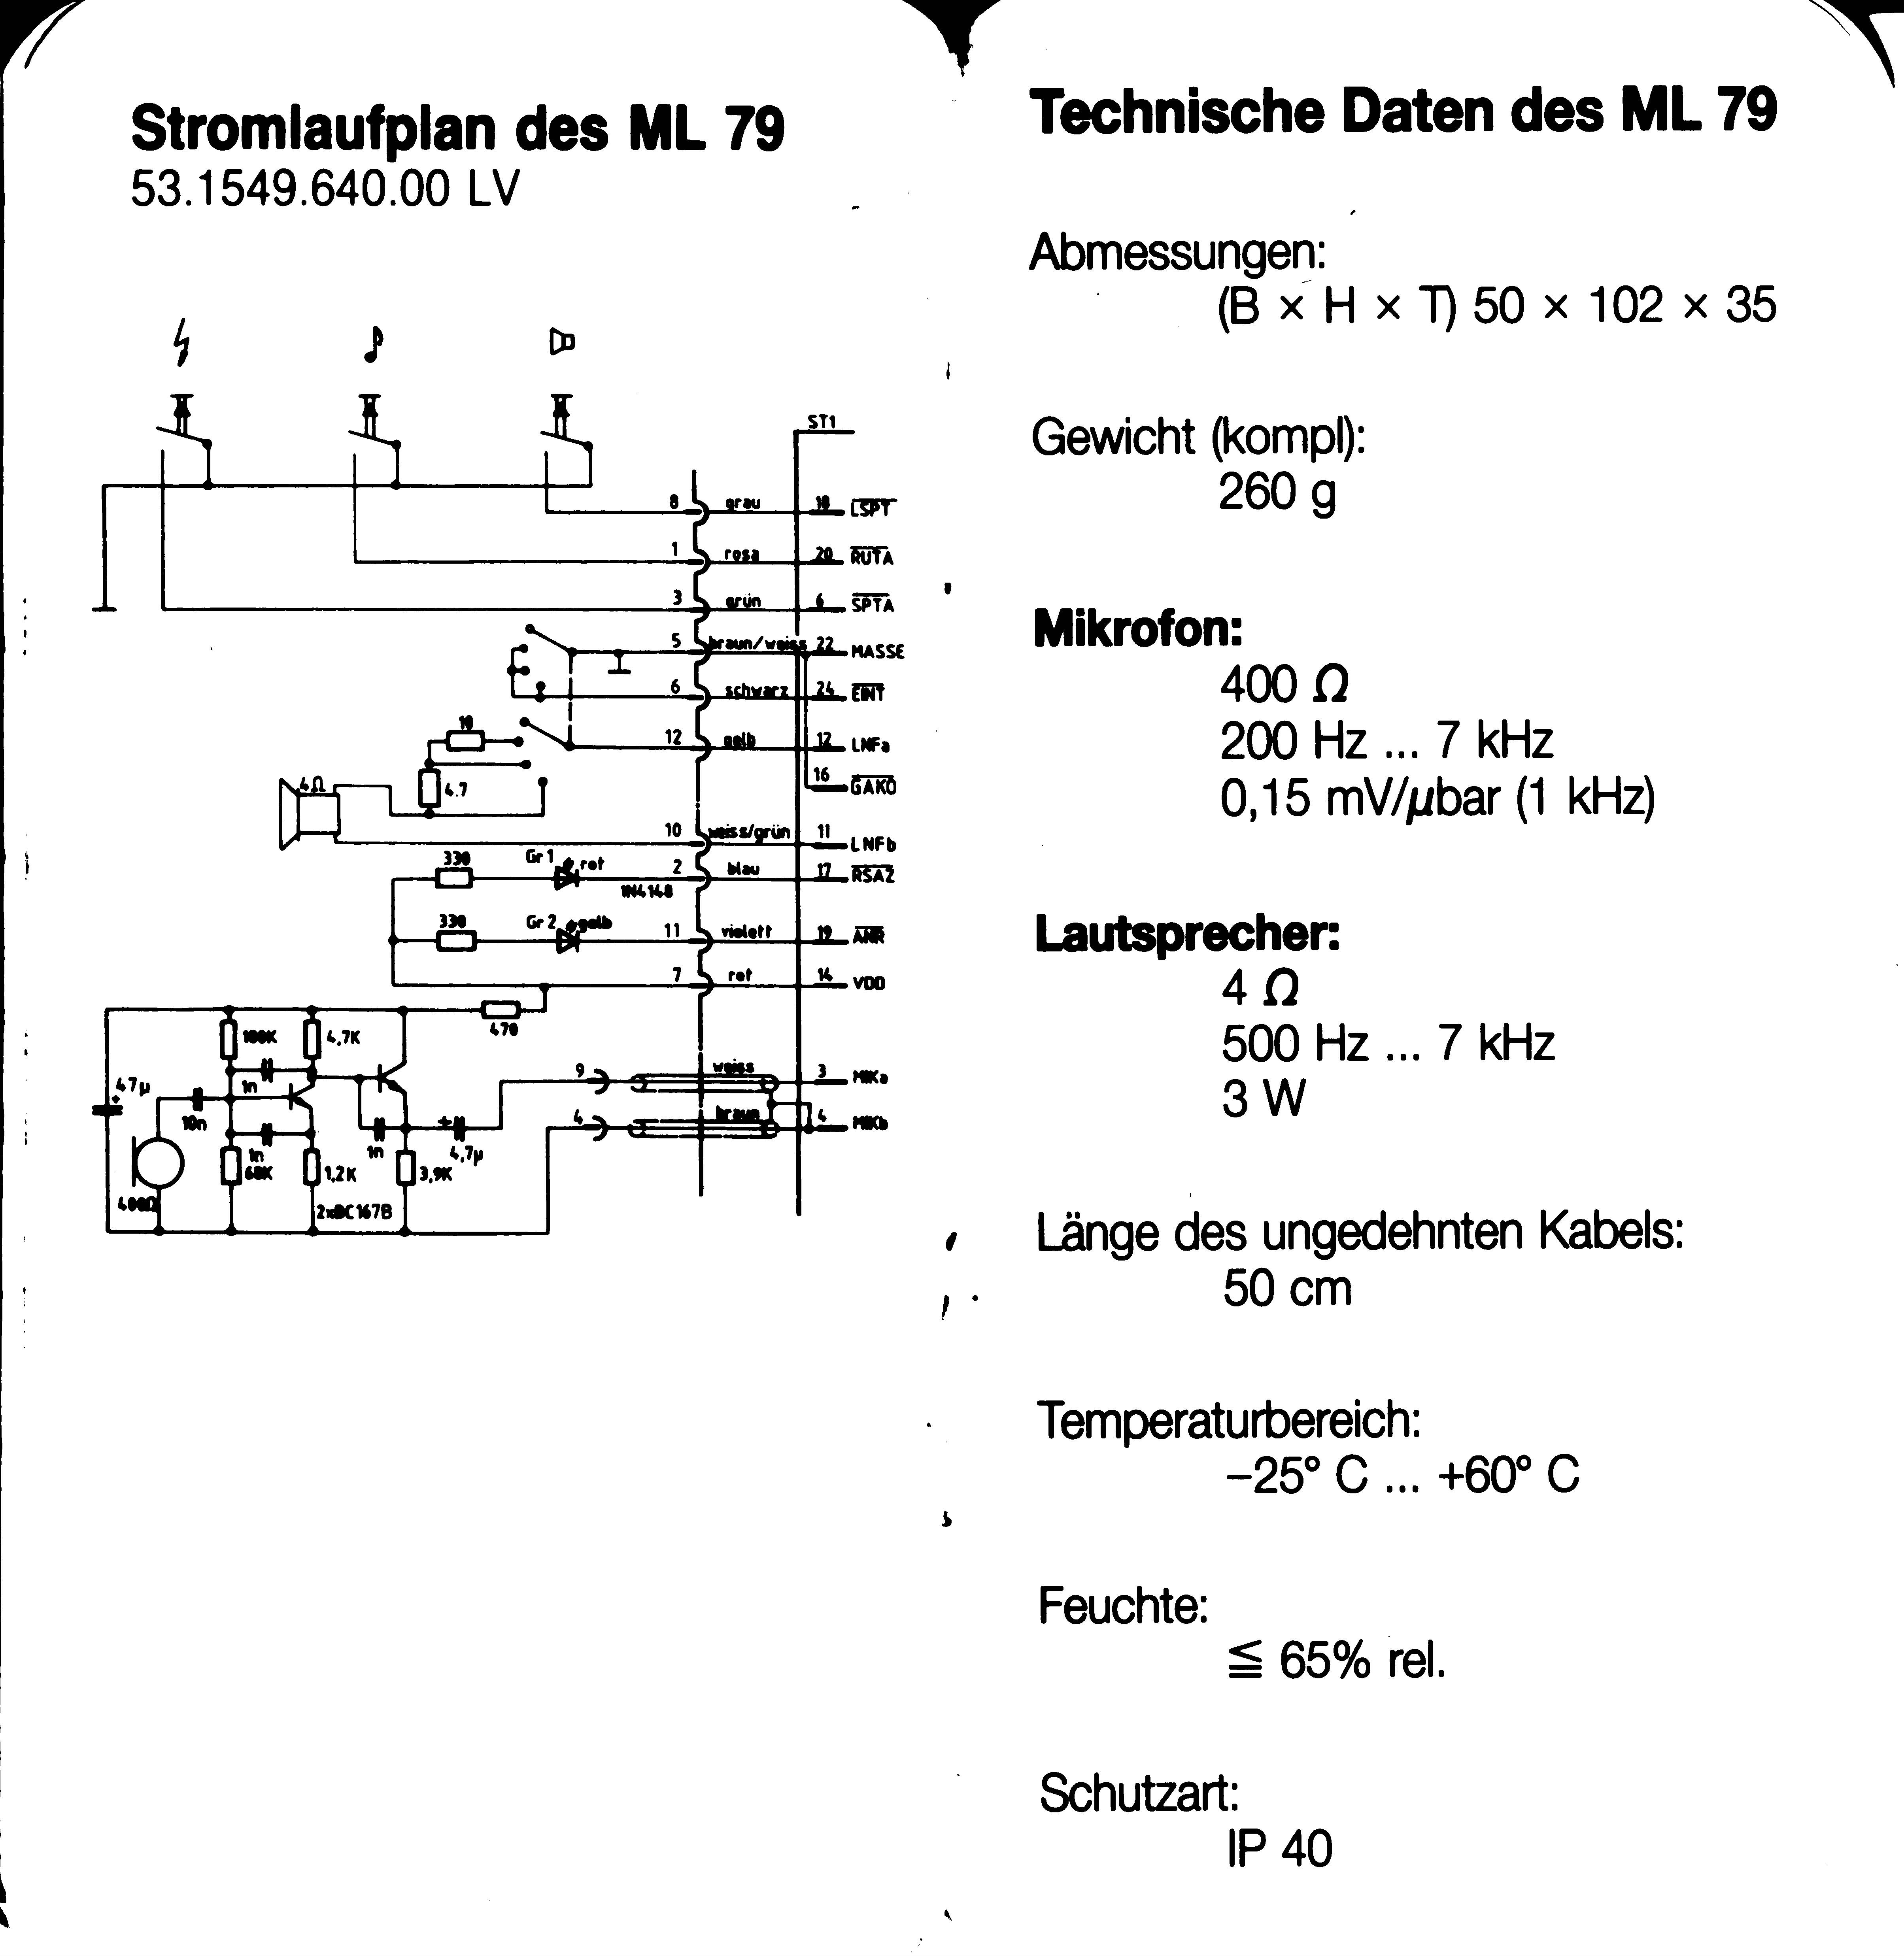 Yves OESCH HB9DTX Transceivers modifications - schematic